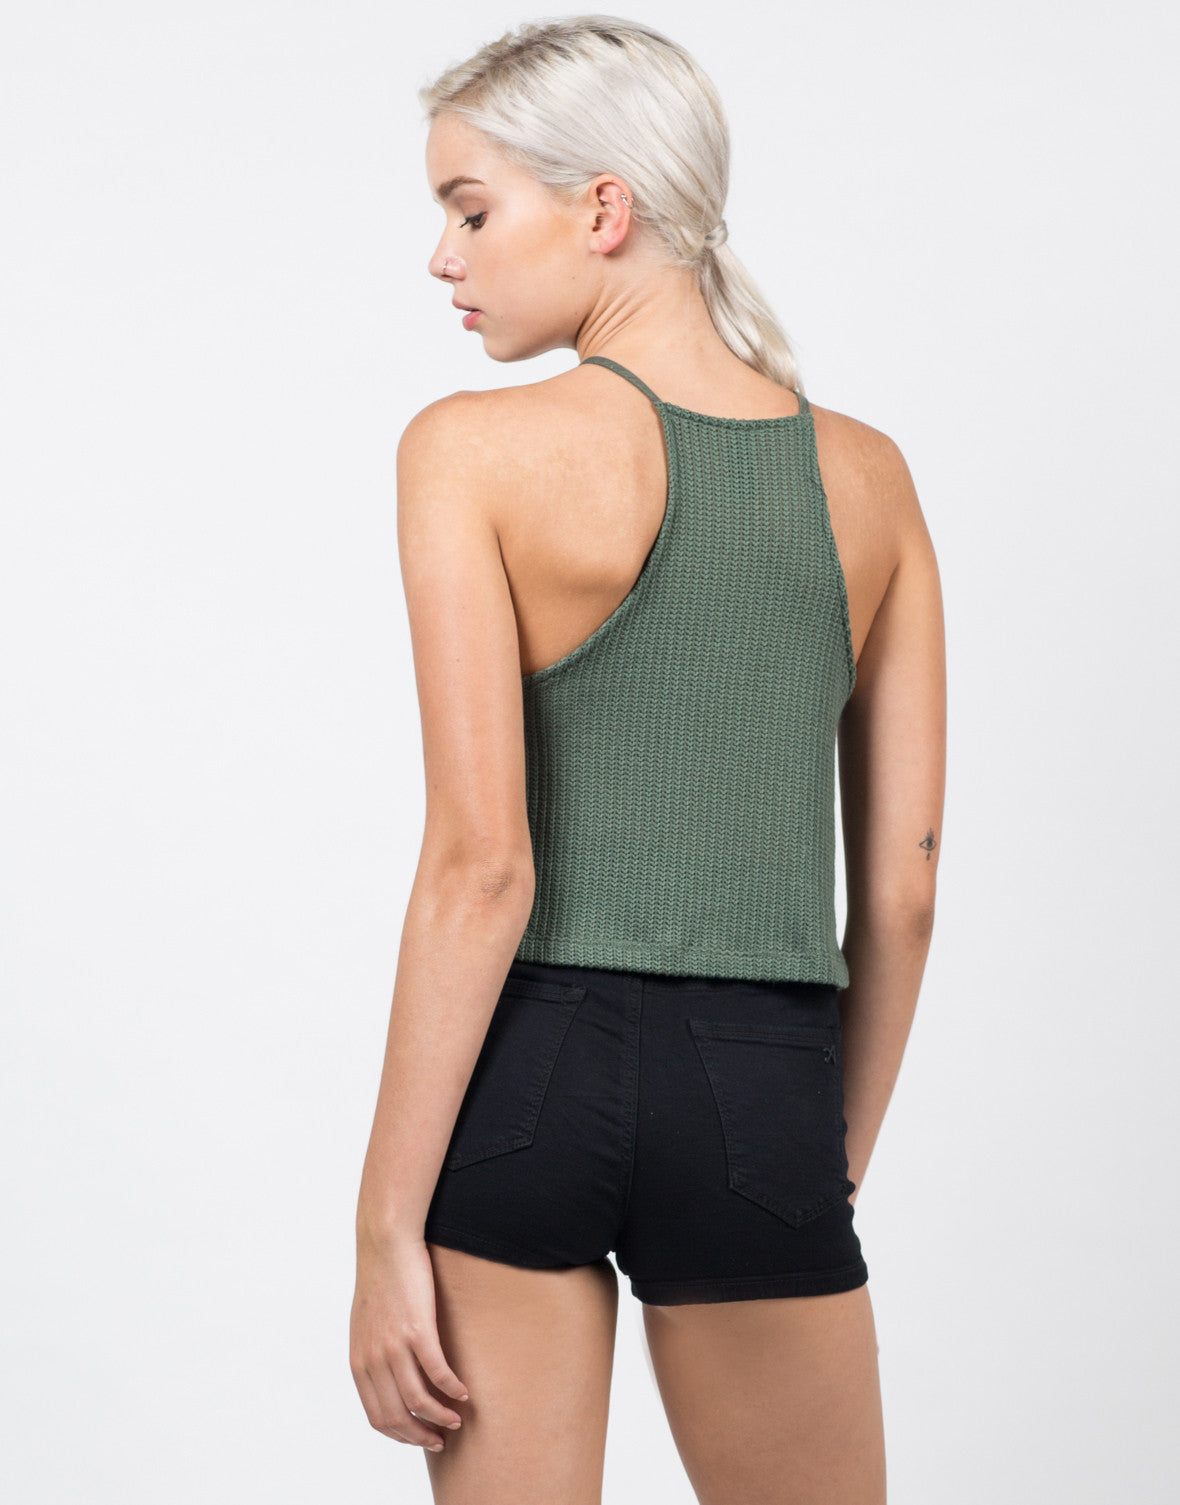 Back View of Knit Cami Swing Top